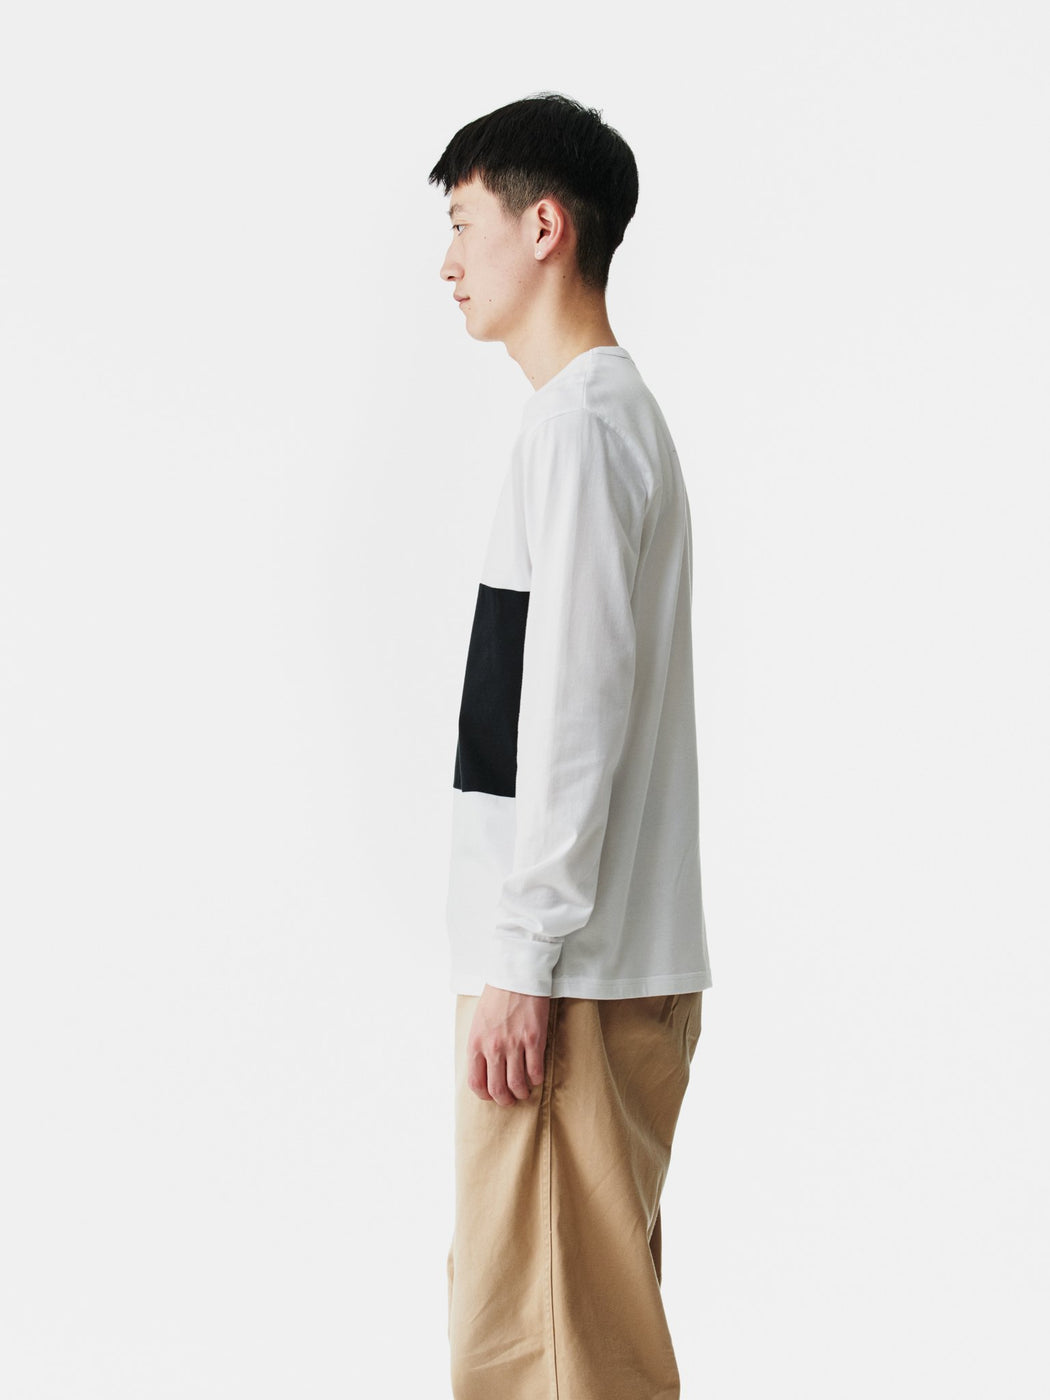 ALOYE Color Block Long Sleeve T-shirt White-Heather Gray